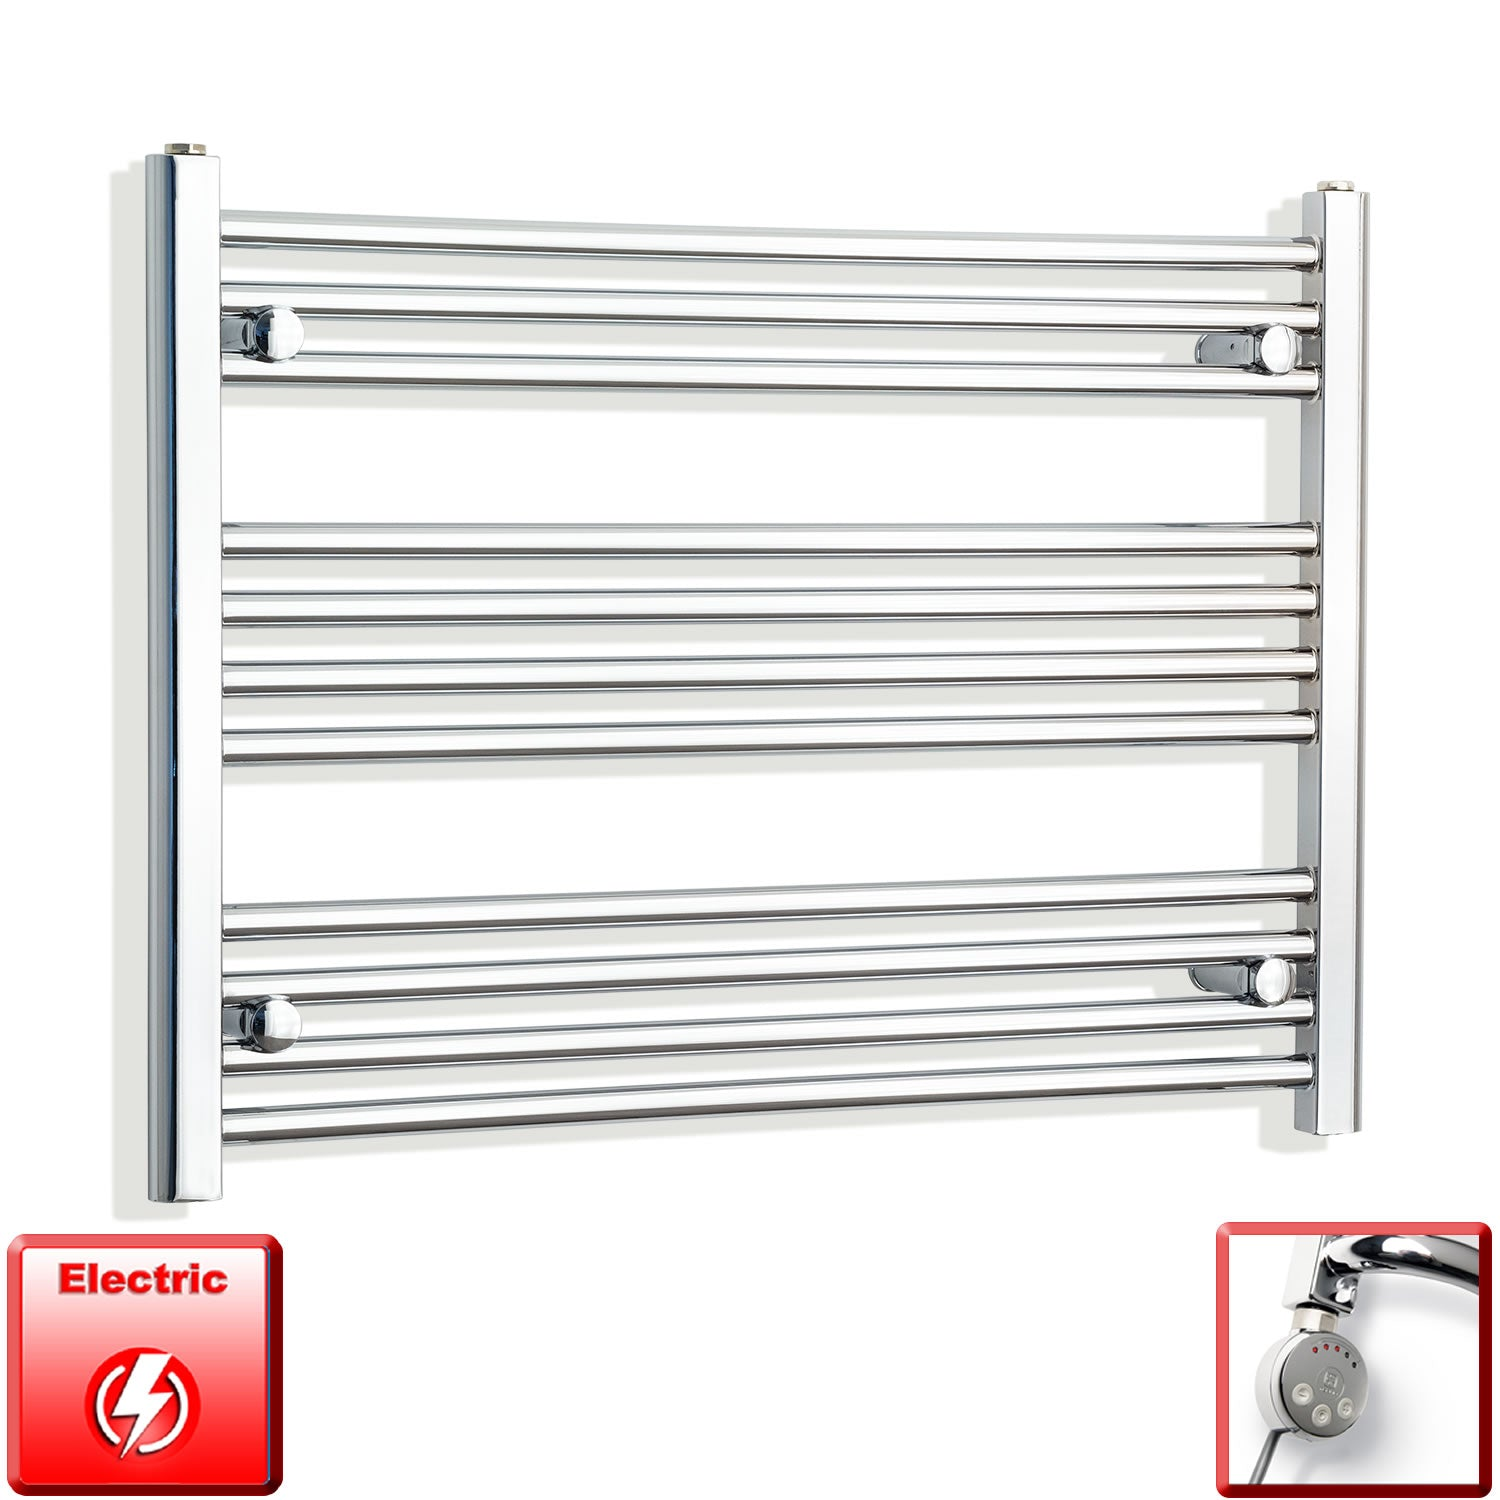 750mm Wide 600mm High Flat Or Curved Chrome Pre-Filled Electric Heated Towel Rail Radiator HTR,MEG Thermostatic Element / Straight